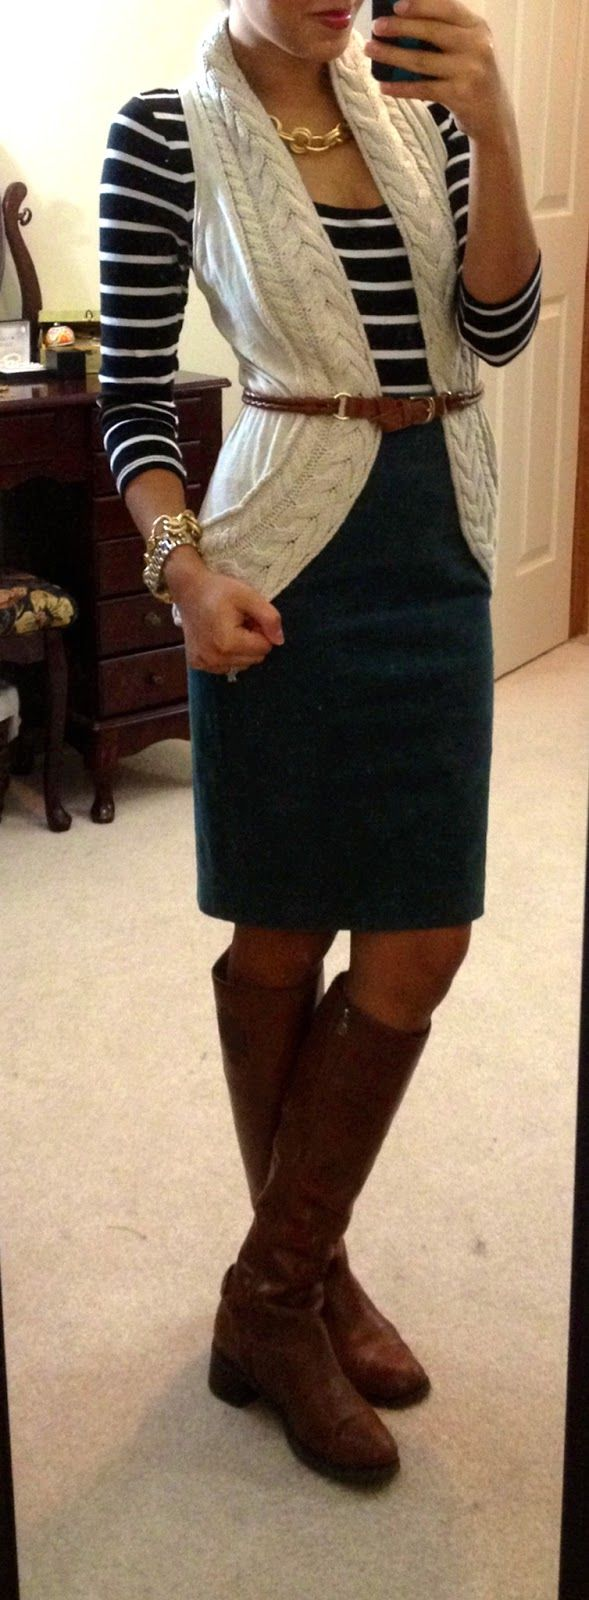 Hello, Gorgeous!: threads. JCrew corduroy pencil skirt worn over F21 striped dress, Banana Republic sweater vest, Etienne Aigner costa boots, H belt,NY watch, modified Style by Tori Spelling necklace & bracelet via Jo-Ann Fabrics